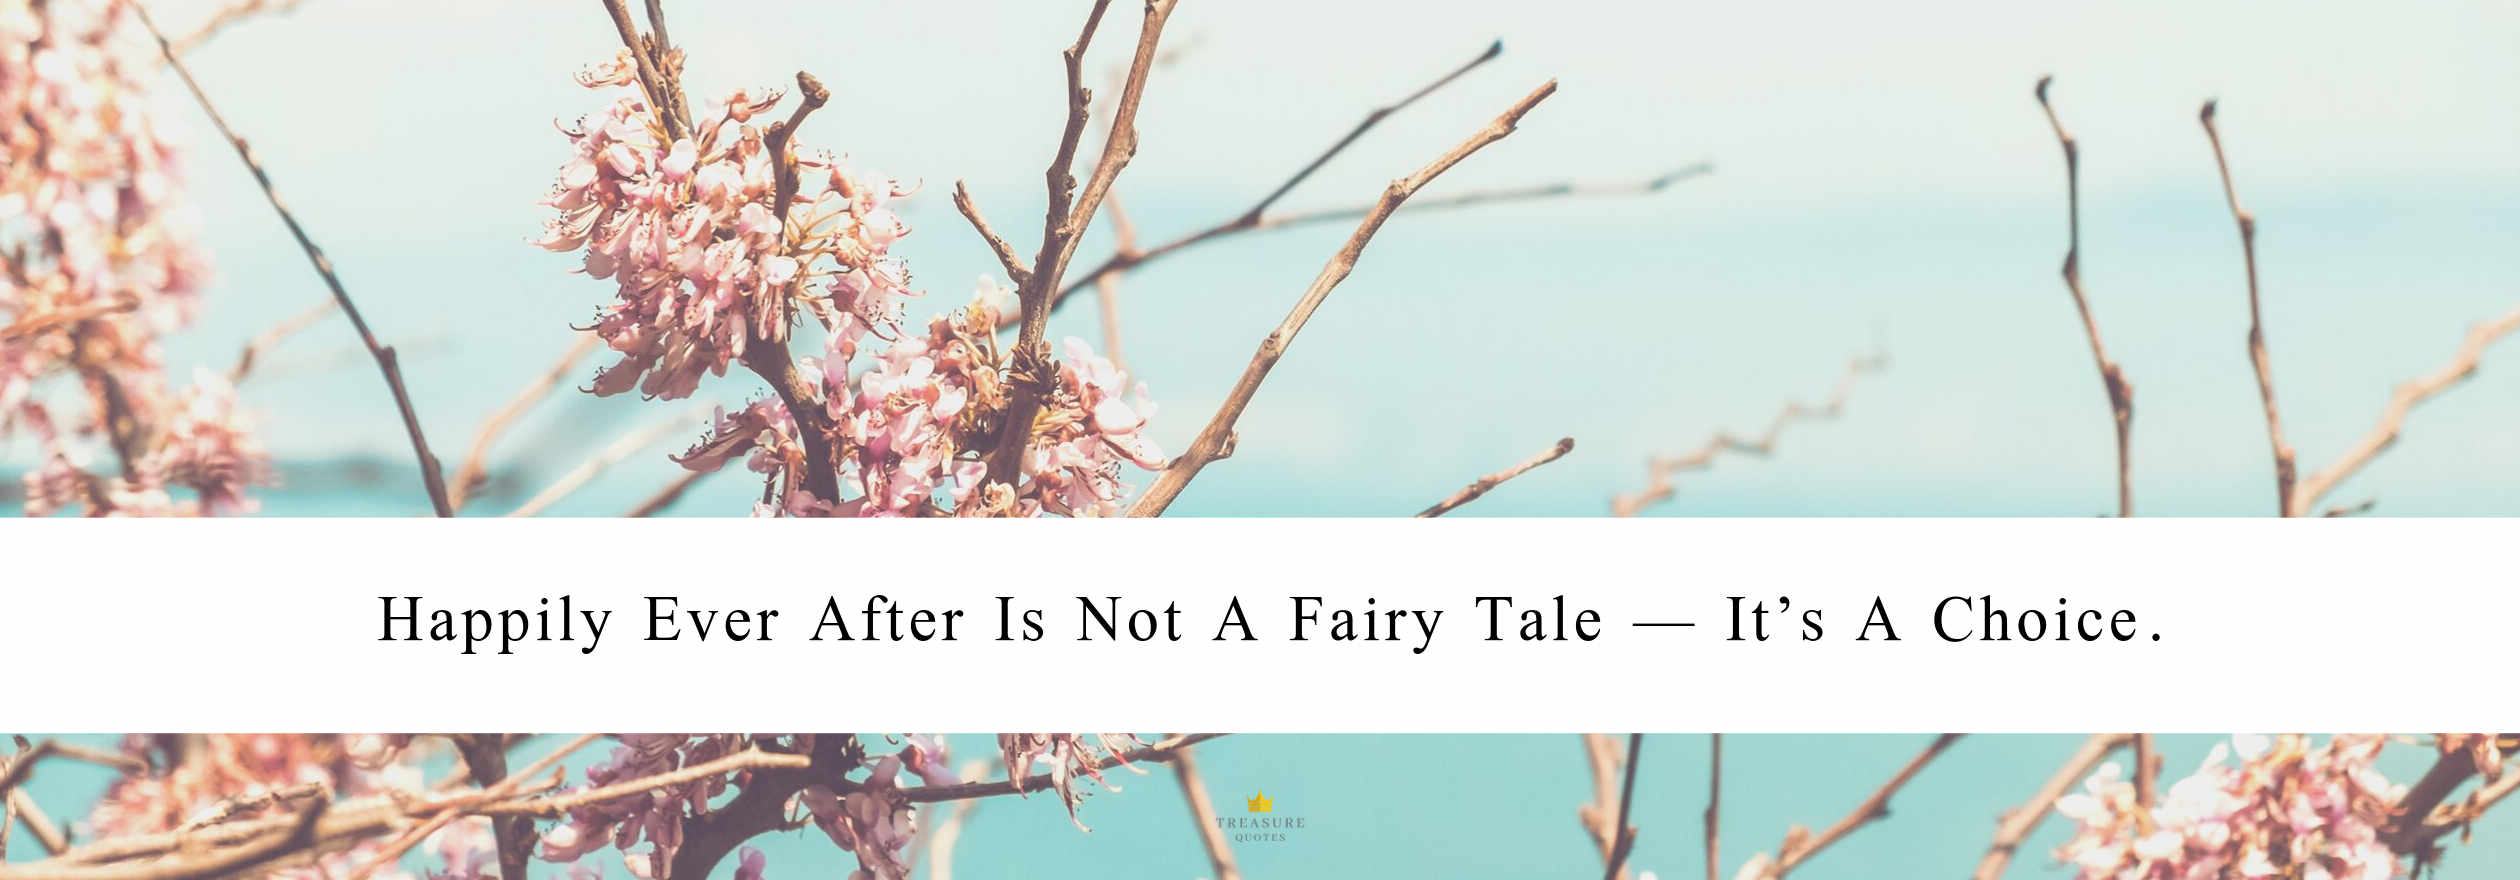 """Happily ever after is not a fairy tale - it's a choice."""